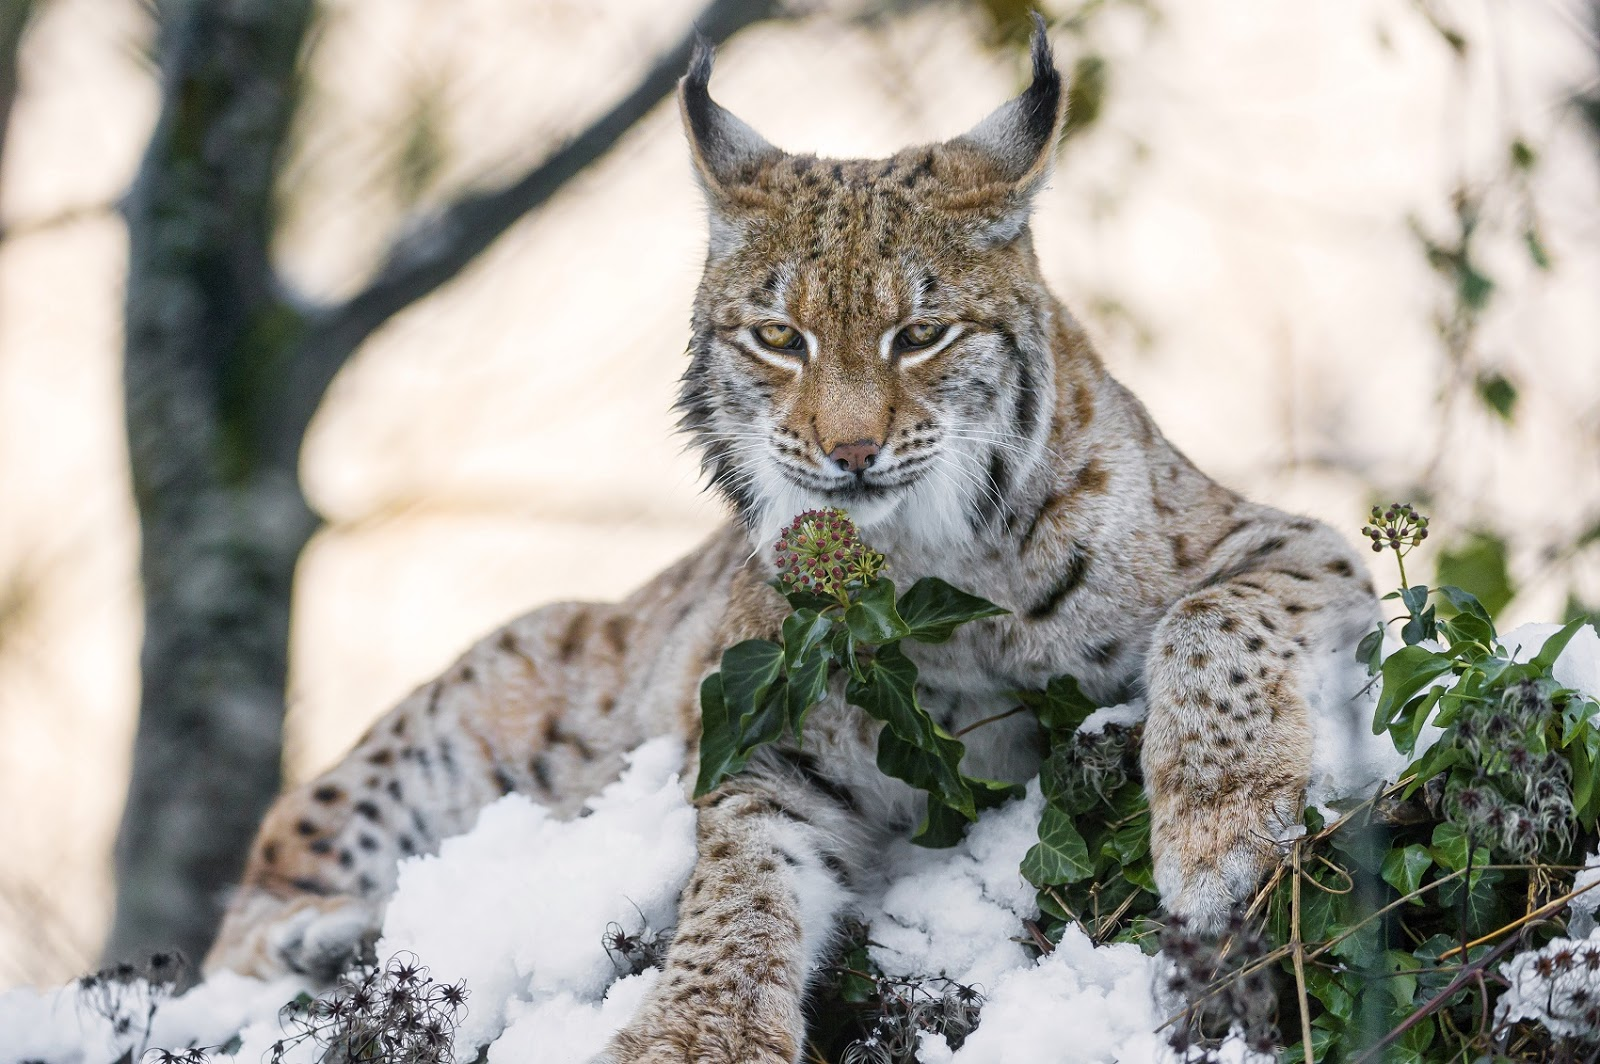 HD Images Of The Wild Animals Wallpapers And Backgrounds